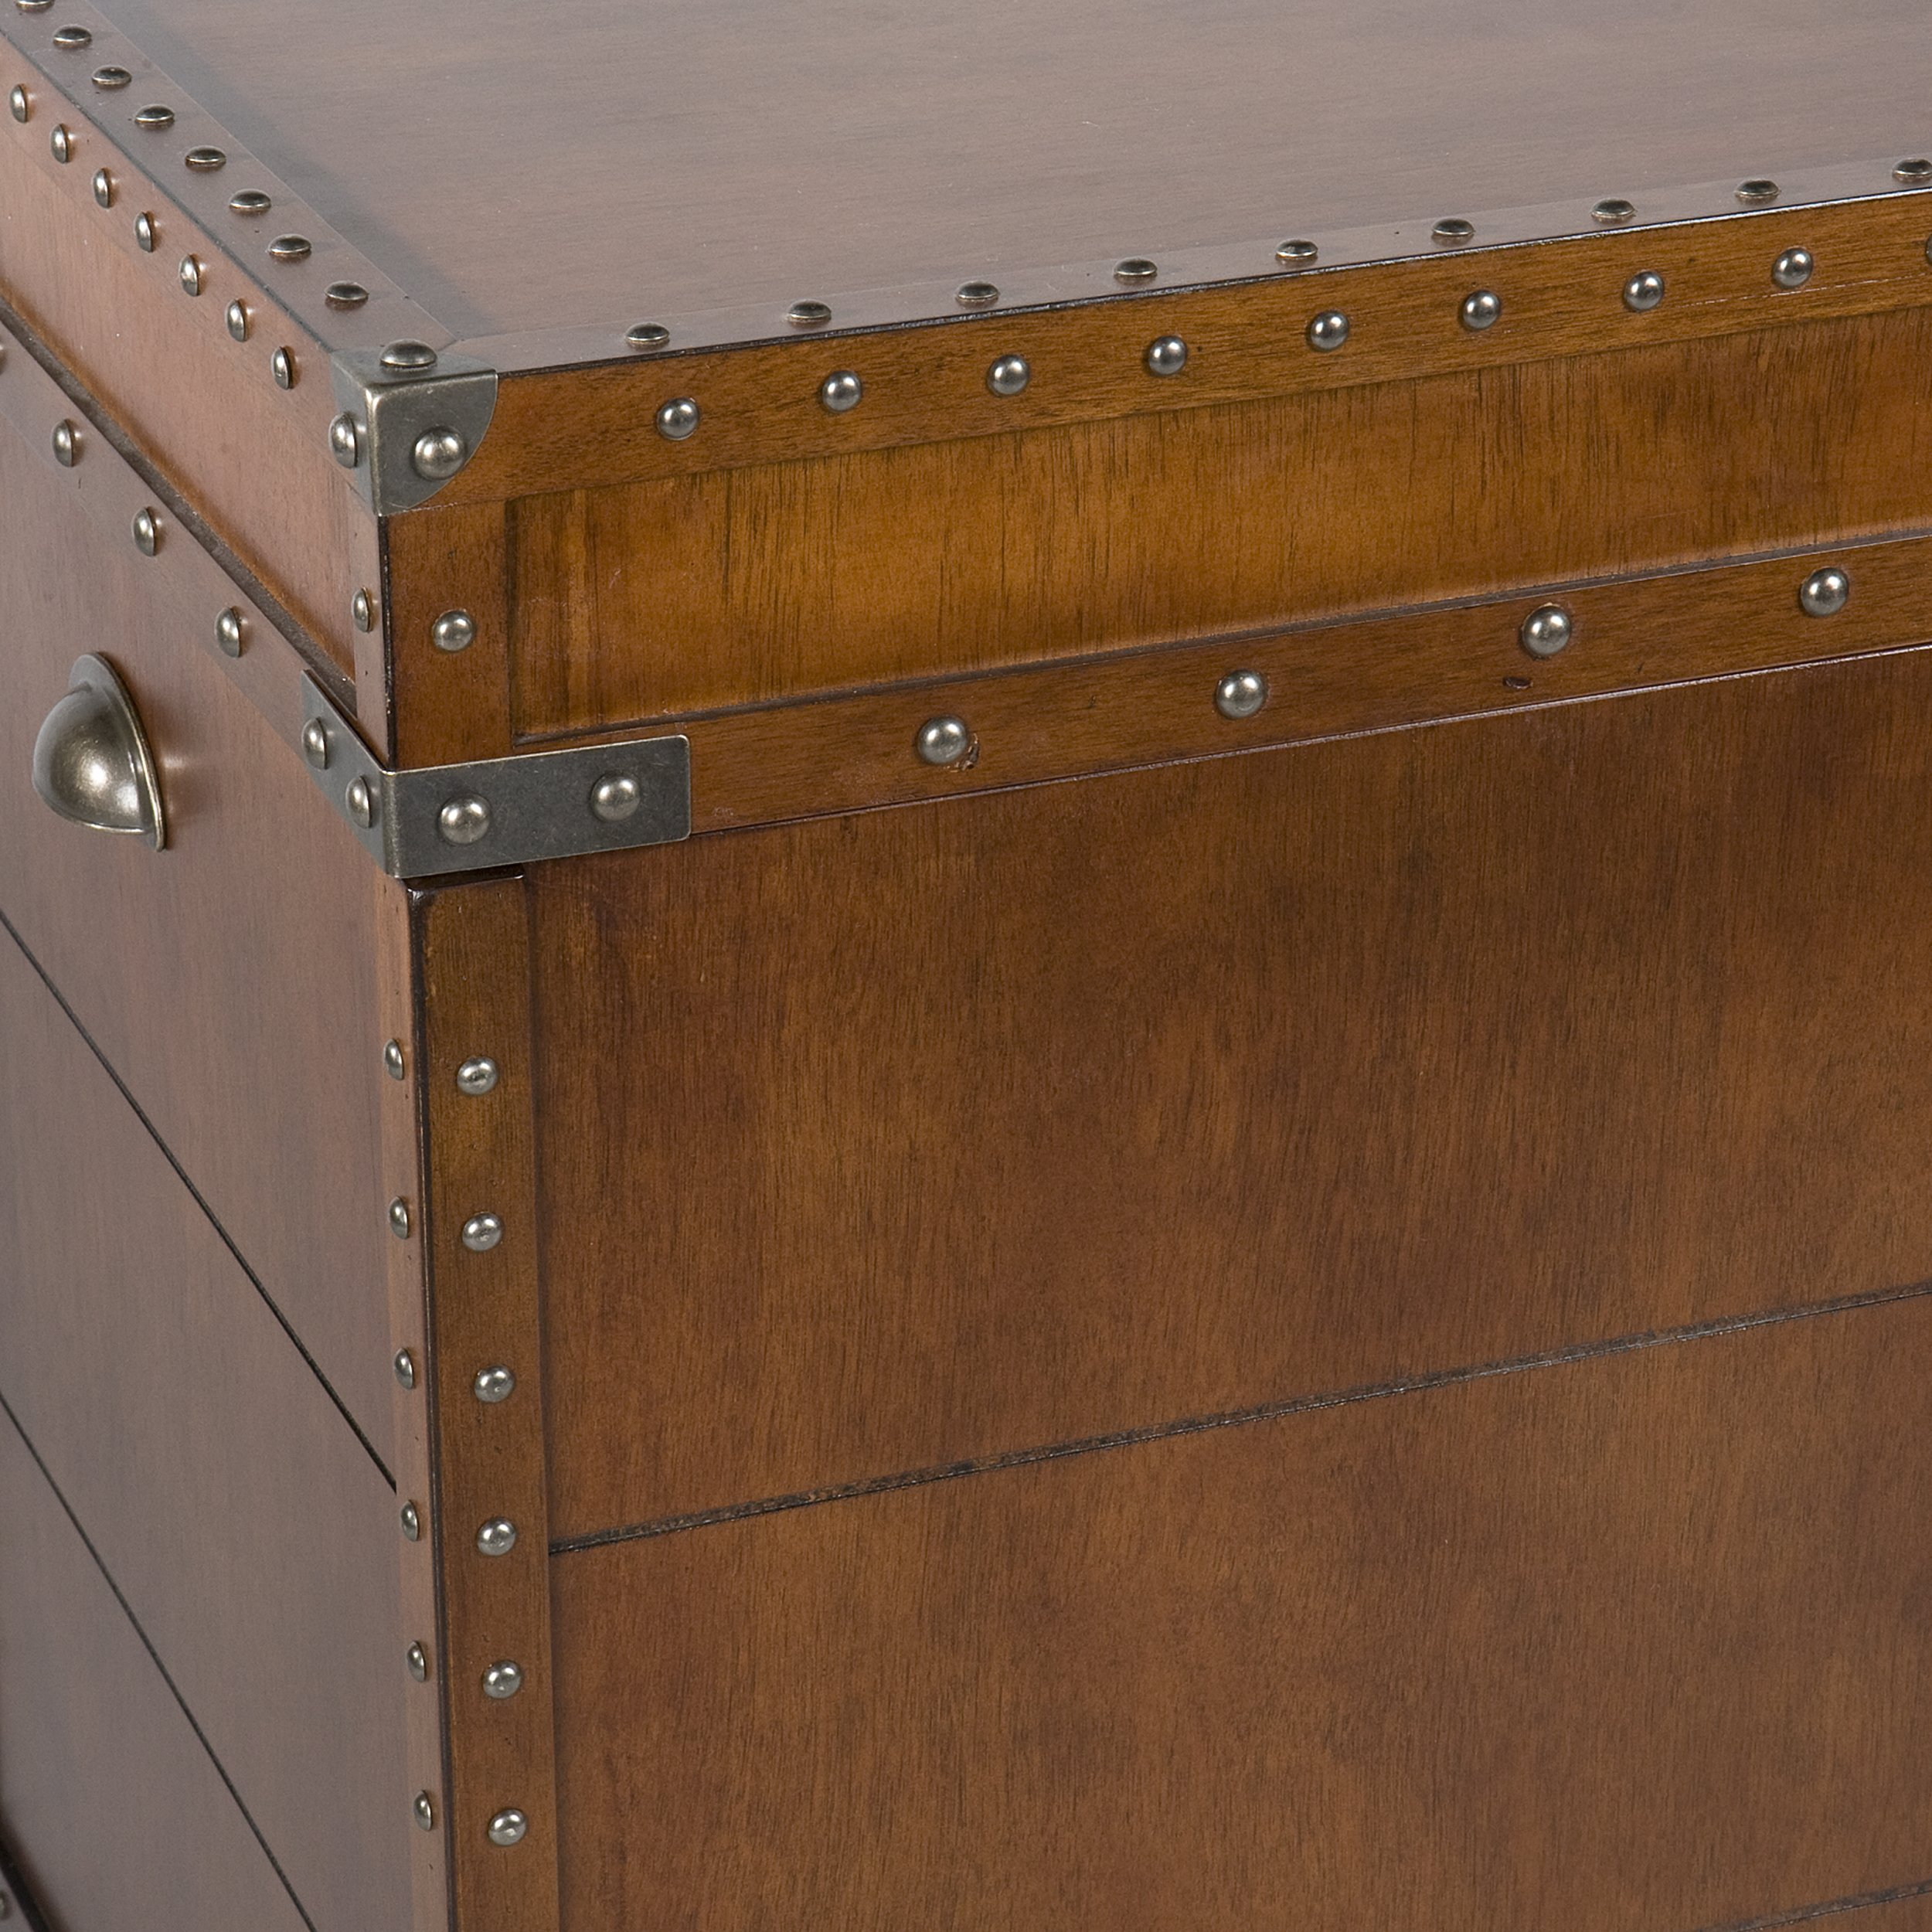 Southern Enterprises Steamer Trunk End Table - Rustic Nailhead Trim - Refinded Industrial Style by Southern Enterprises (Image #4)